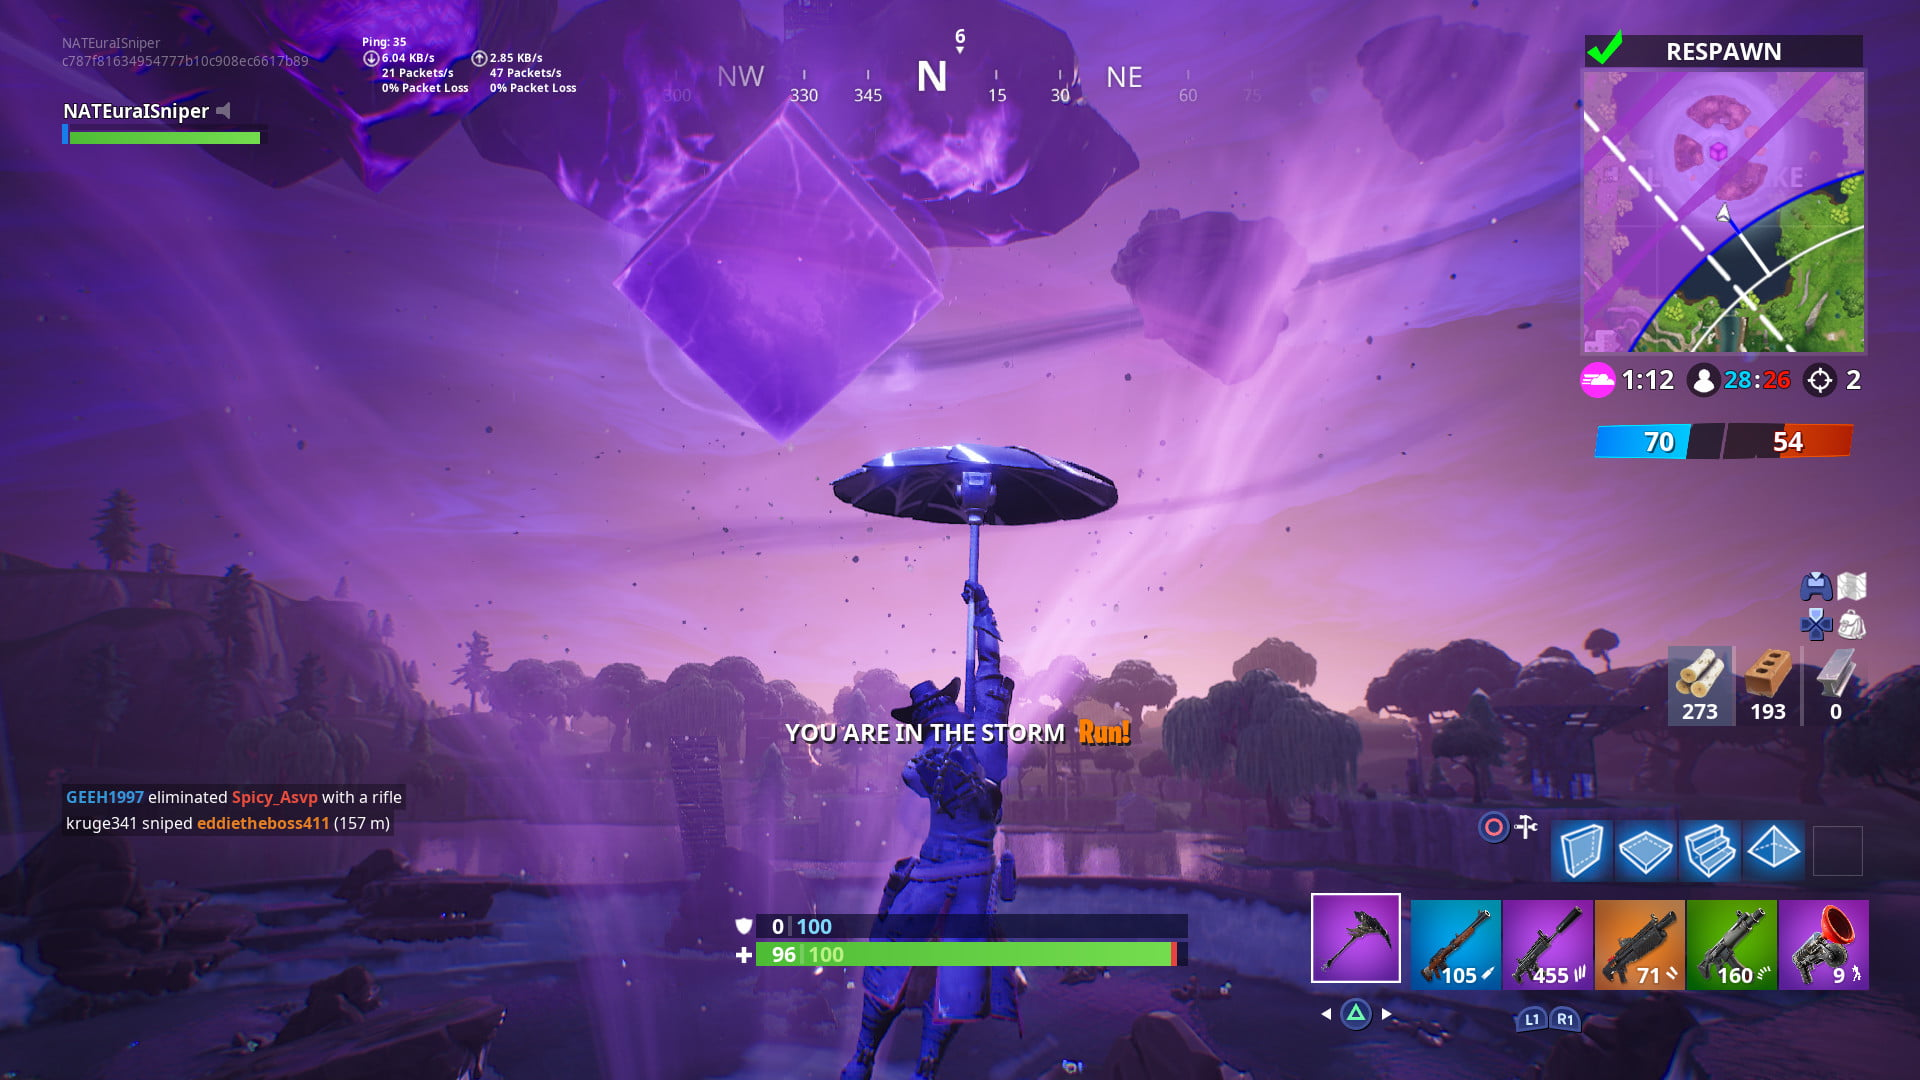 Fortnite Review: A Year Later, It Remains a Battle Royale For The